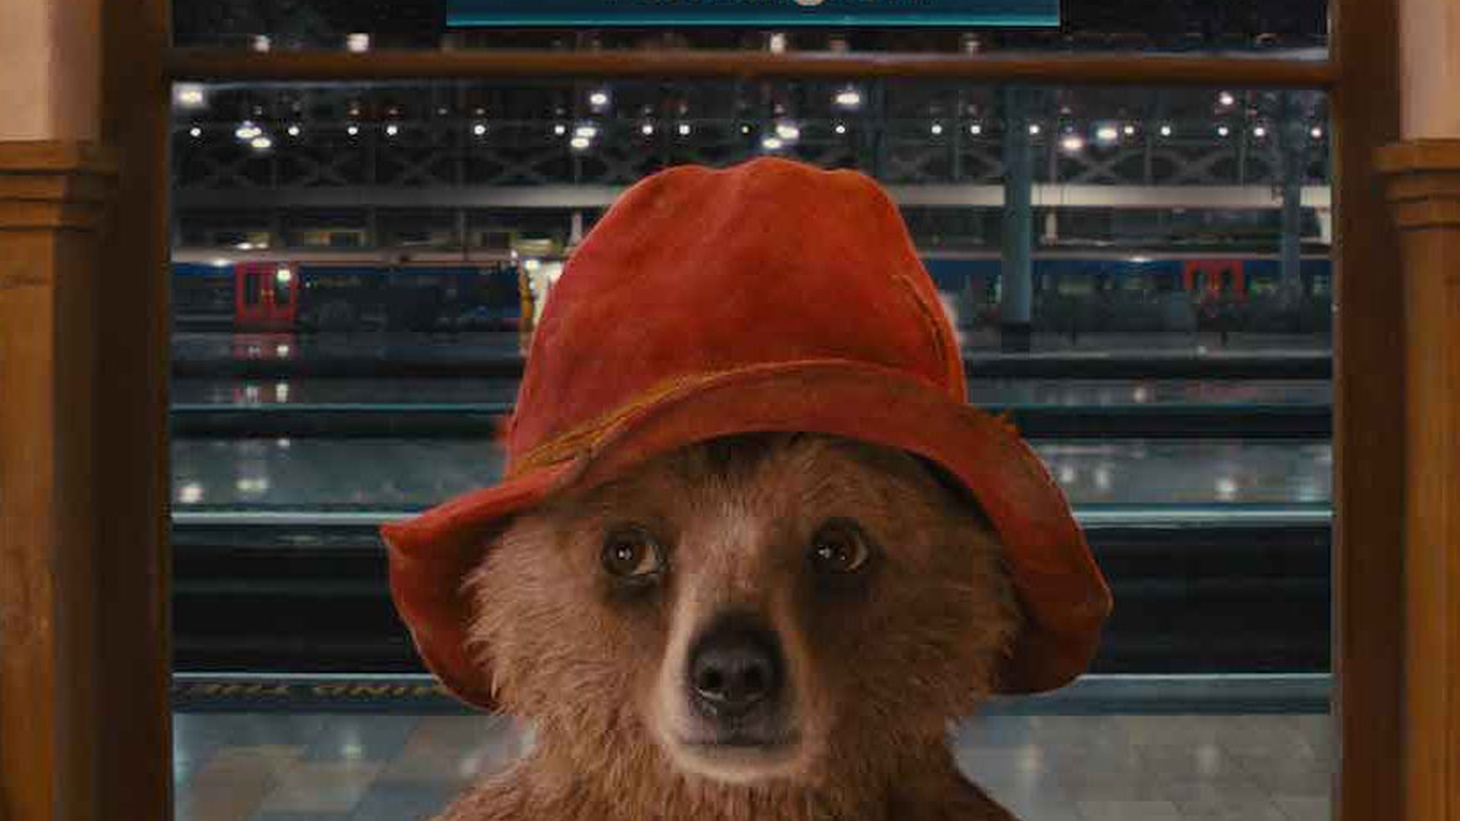 Paddington is the comic chronicle of a Peruvian bear's adventures in London, and it turns out to be a total charmer...